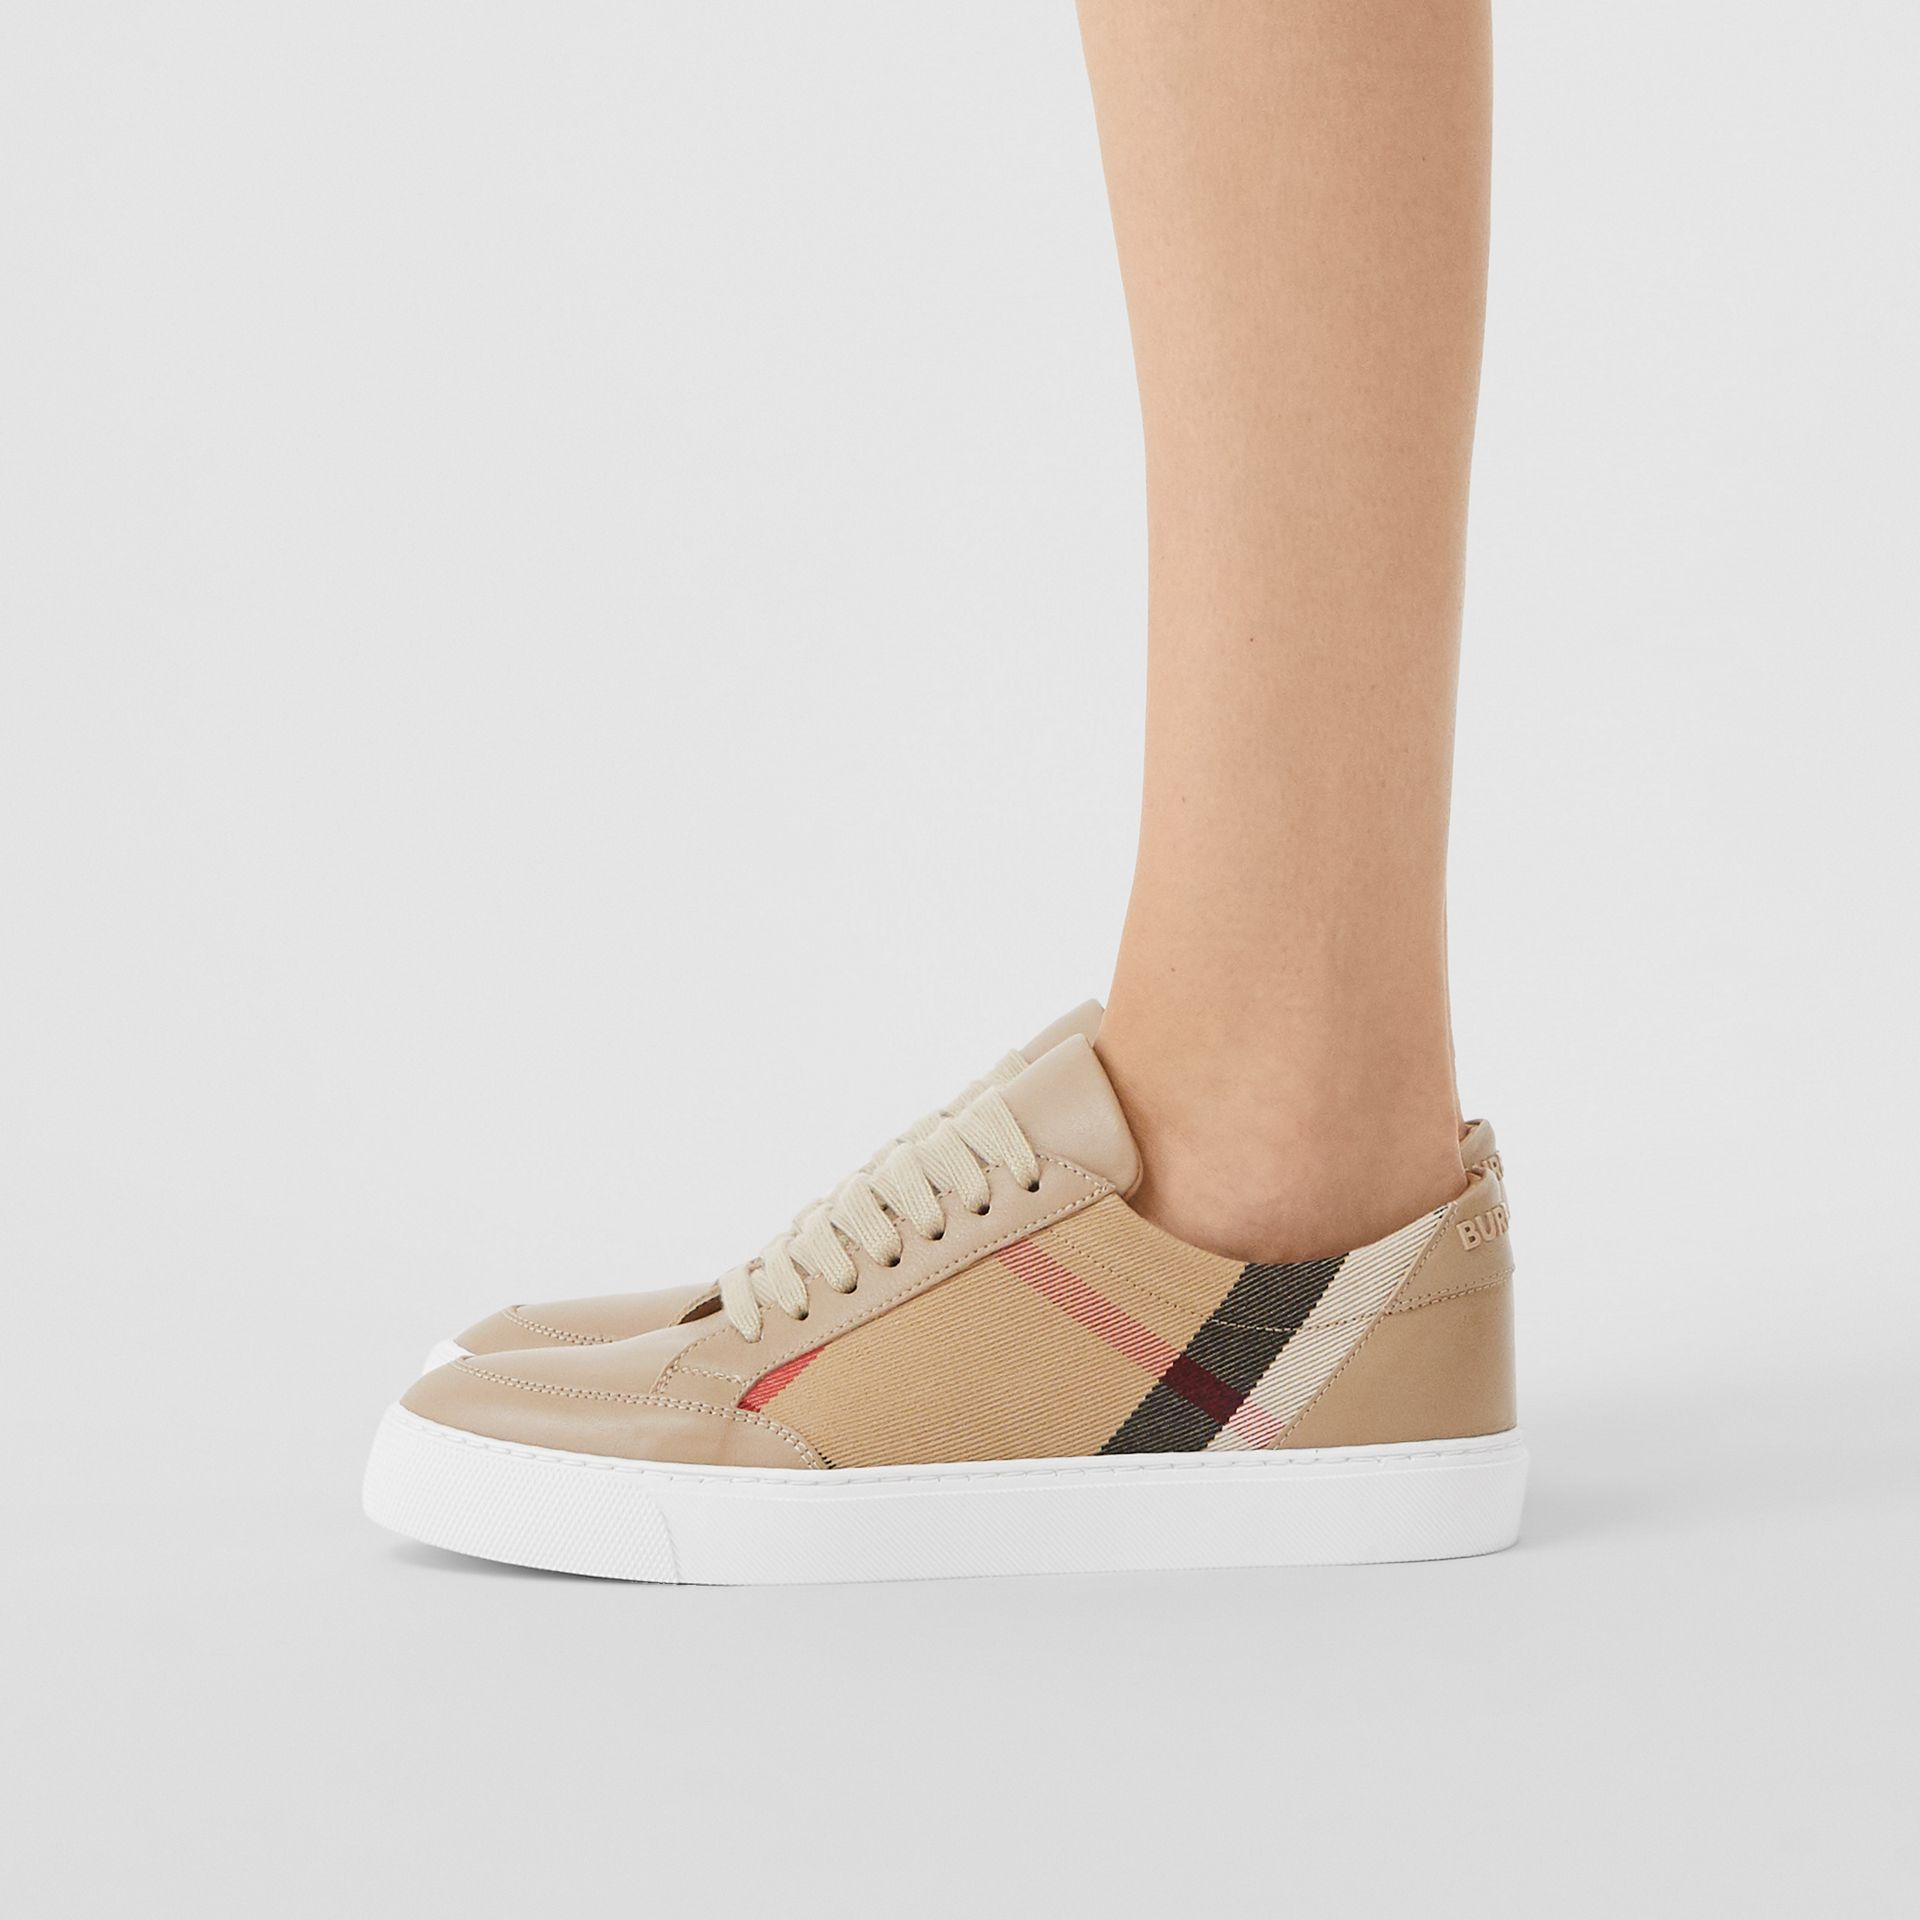 House Check and Leather Sneakers in Tan - Women | Burberry - gallery image 2